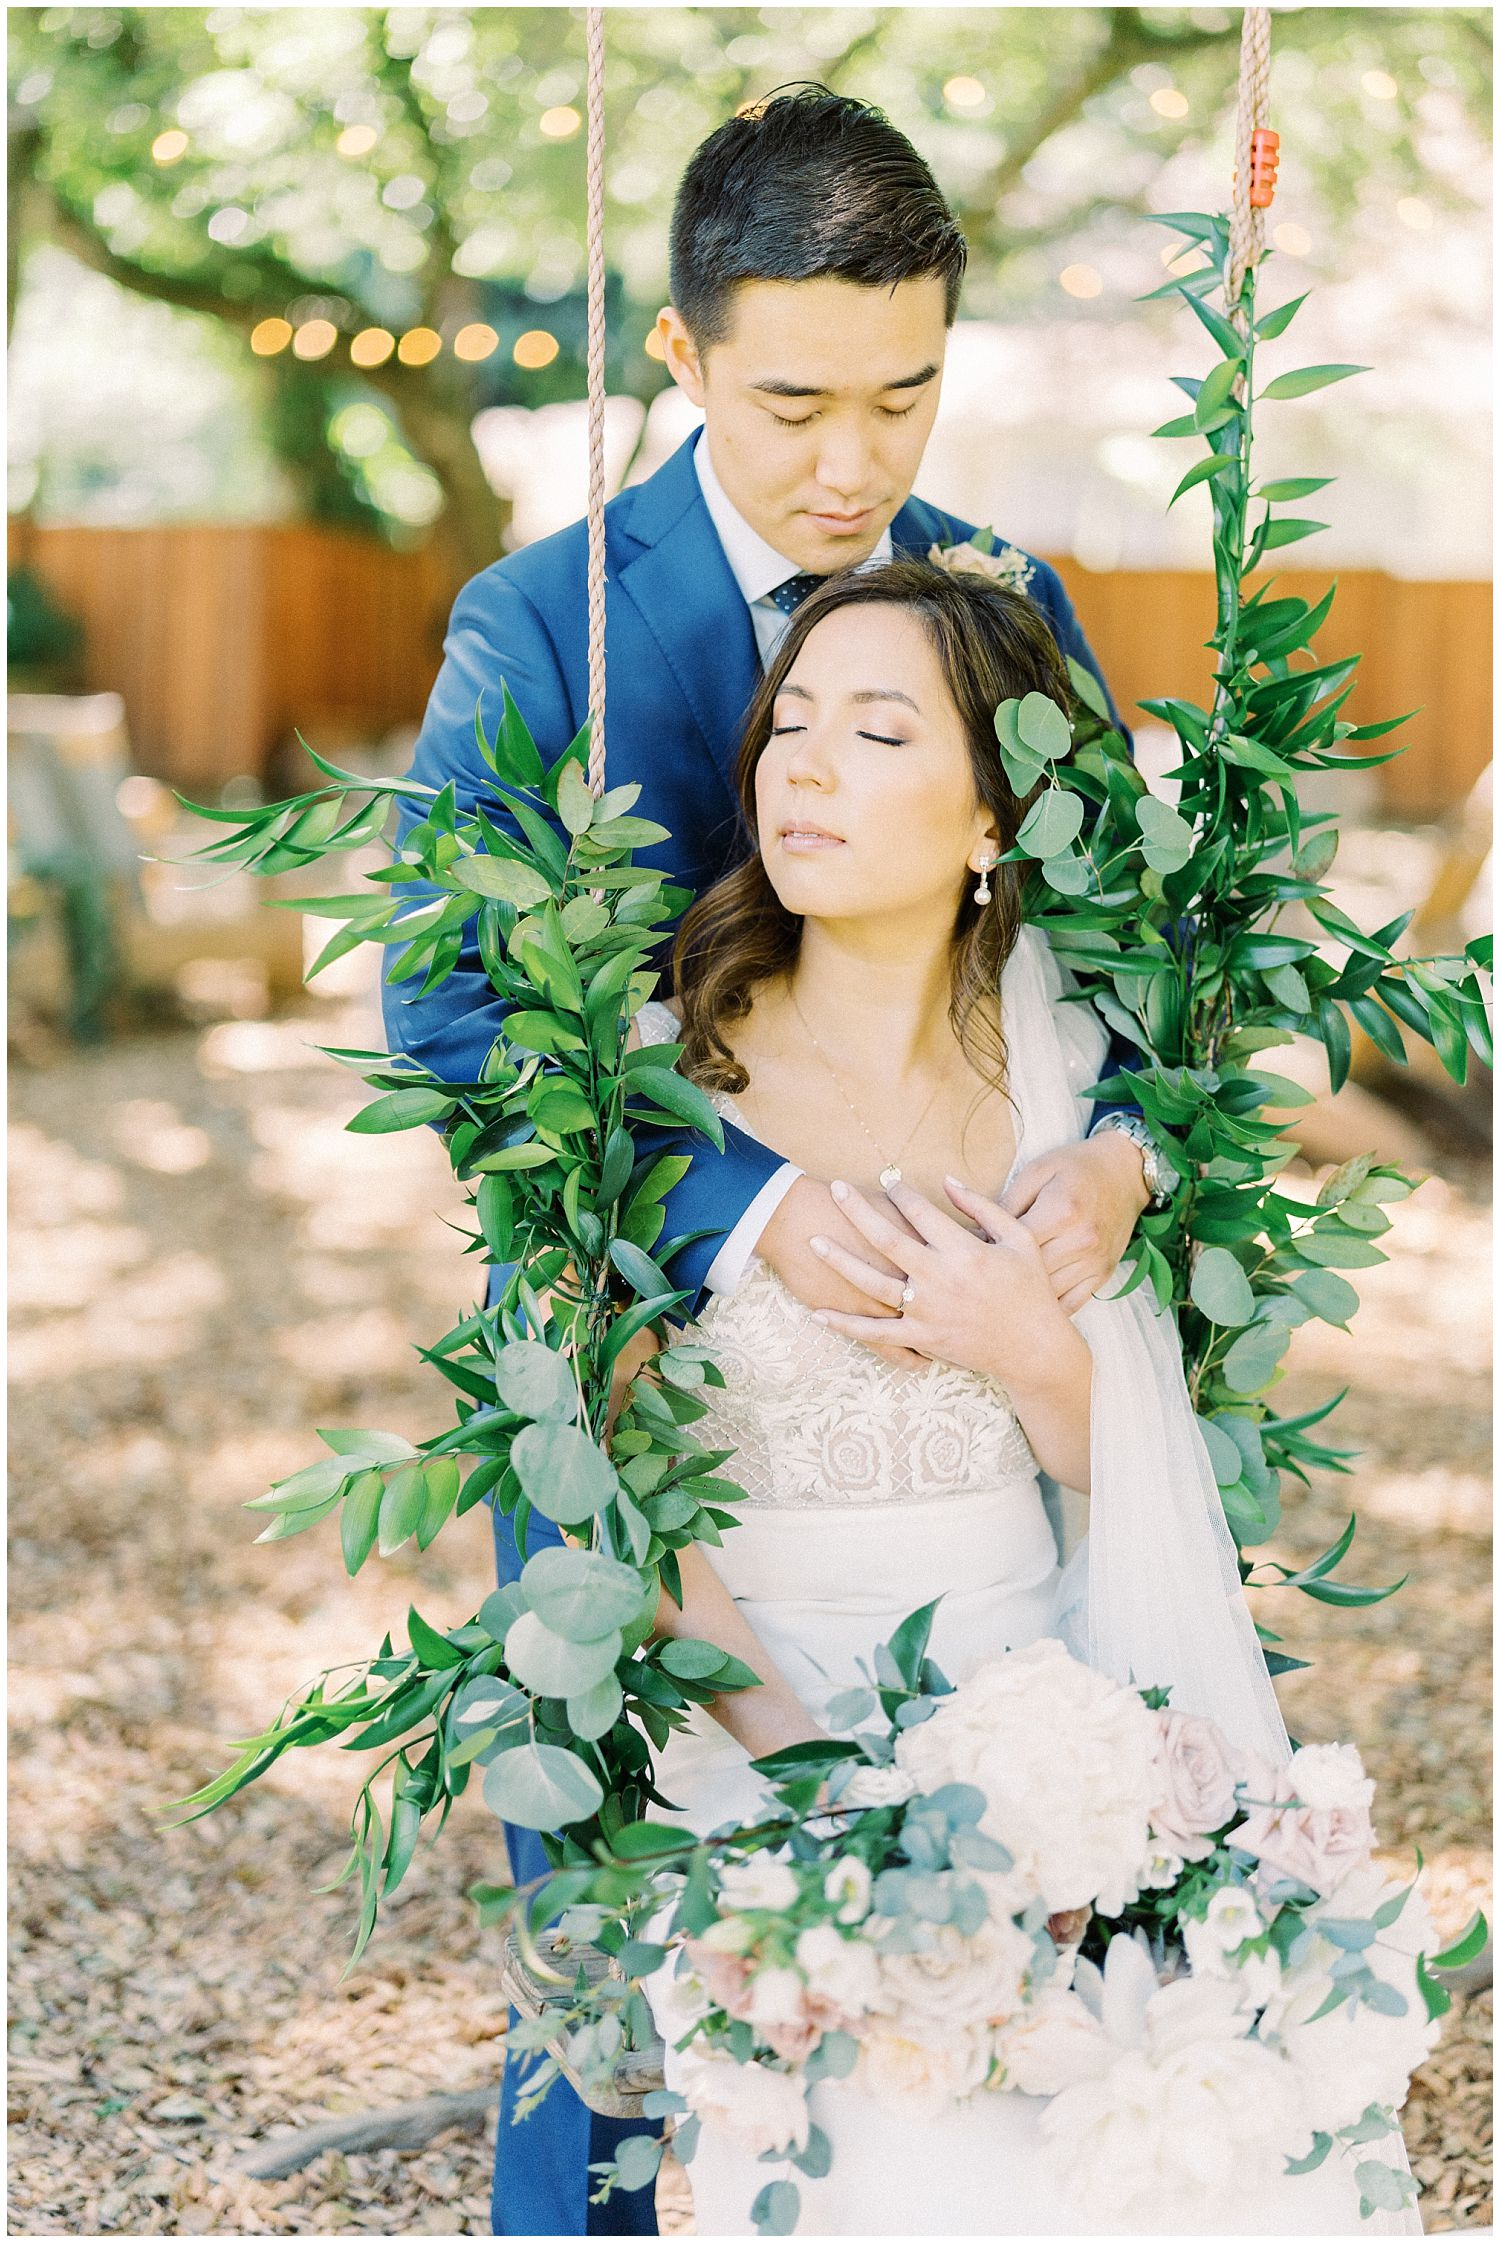 Mountain Terrace Wedding in Woodside, California captured by Winnie Dora Photography